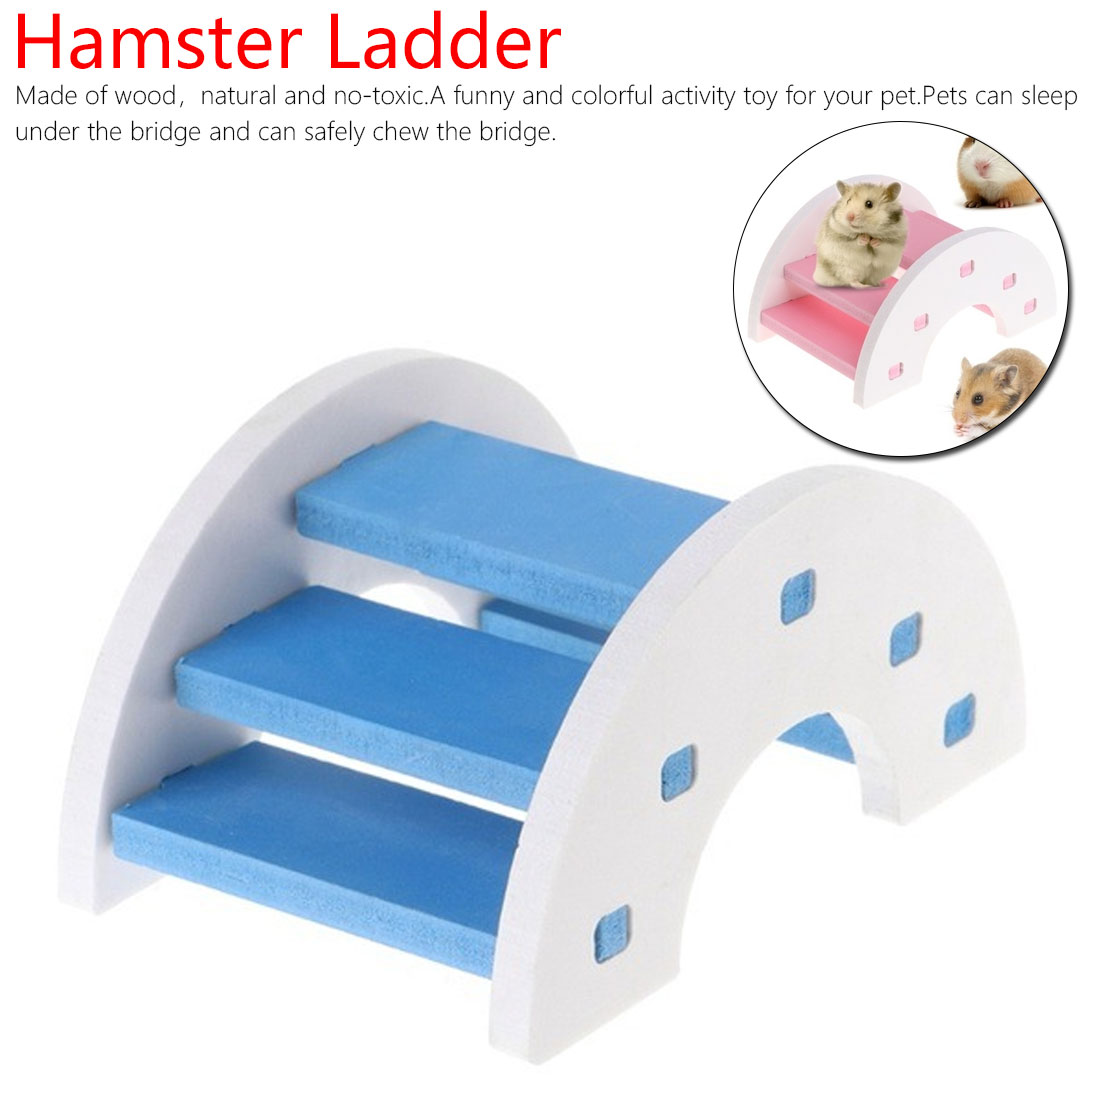 Wooden Bridge Hanging Toys Cute Hamster Ladder Natural Wooden Bridge Pet Toys for Small Animals Cage Accessories Pet Product